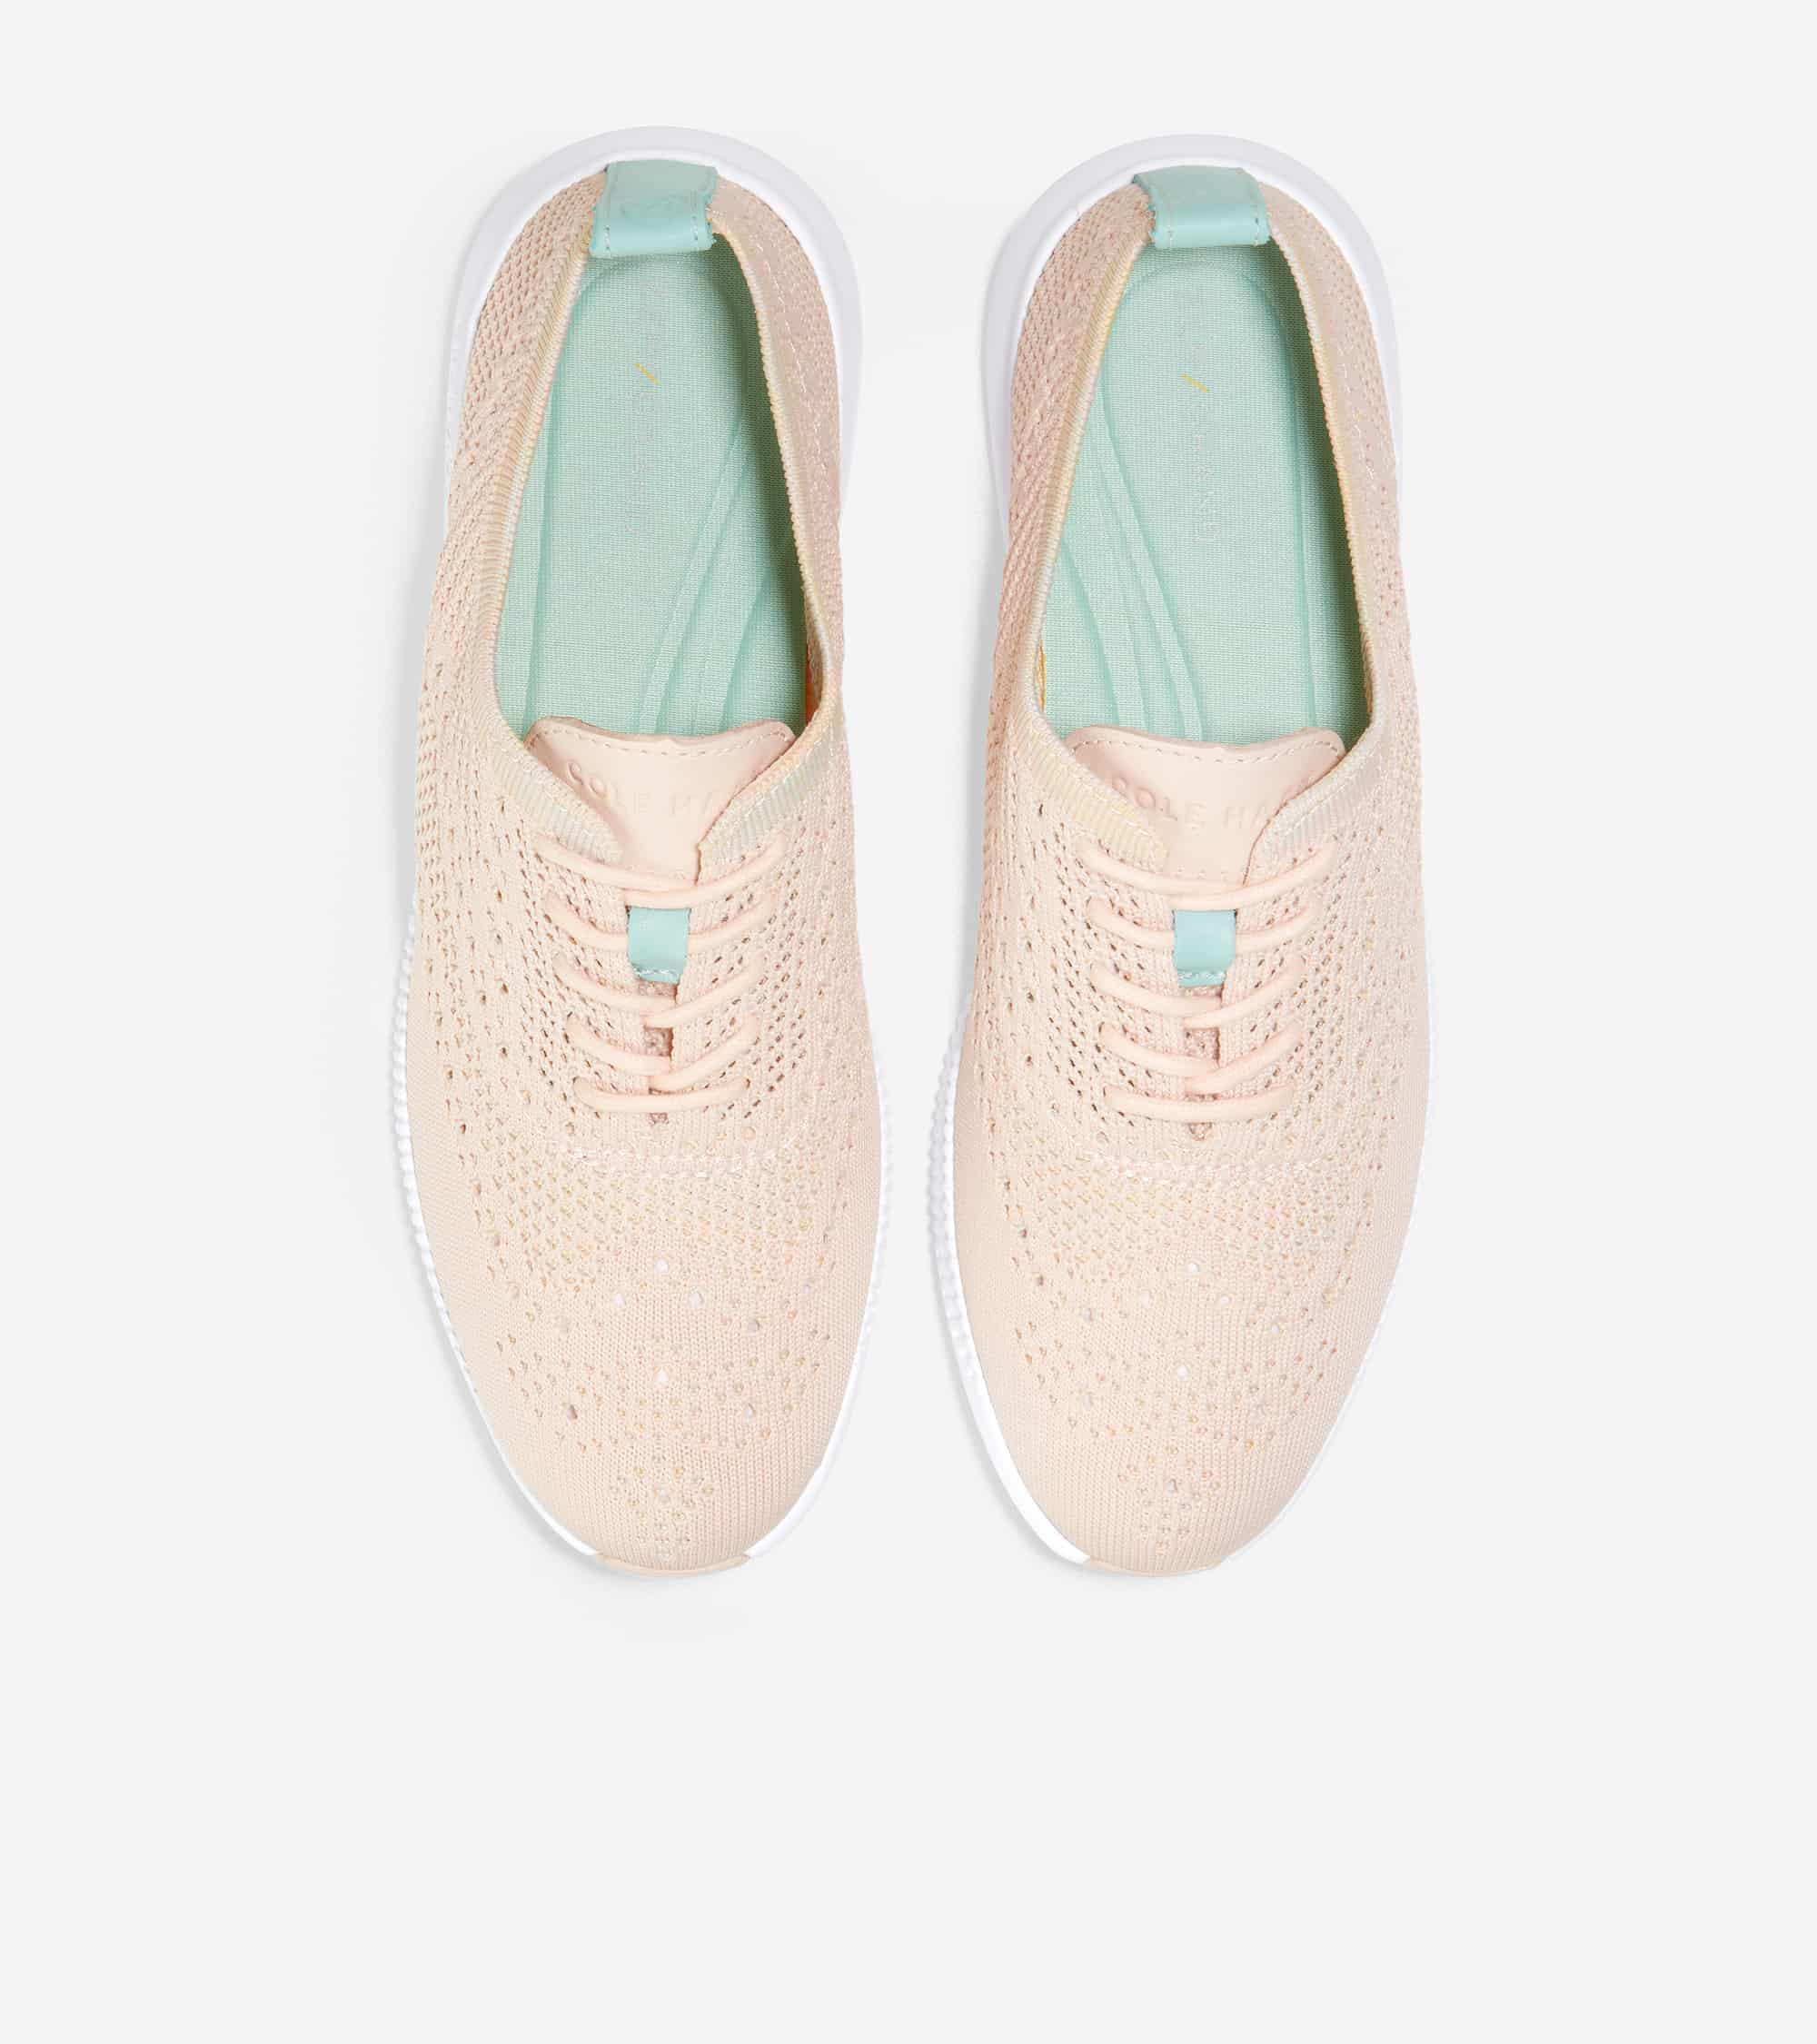 Cole Haan 2.ZERØGRAND Stitchlite Oxford Clay Pink & Multi Ombre / Blue Tint Patent / Optic White Midsole / Clay Pink Rbr Pods